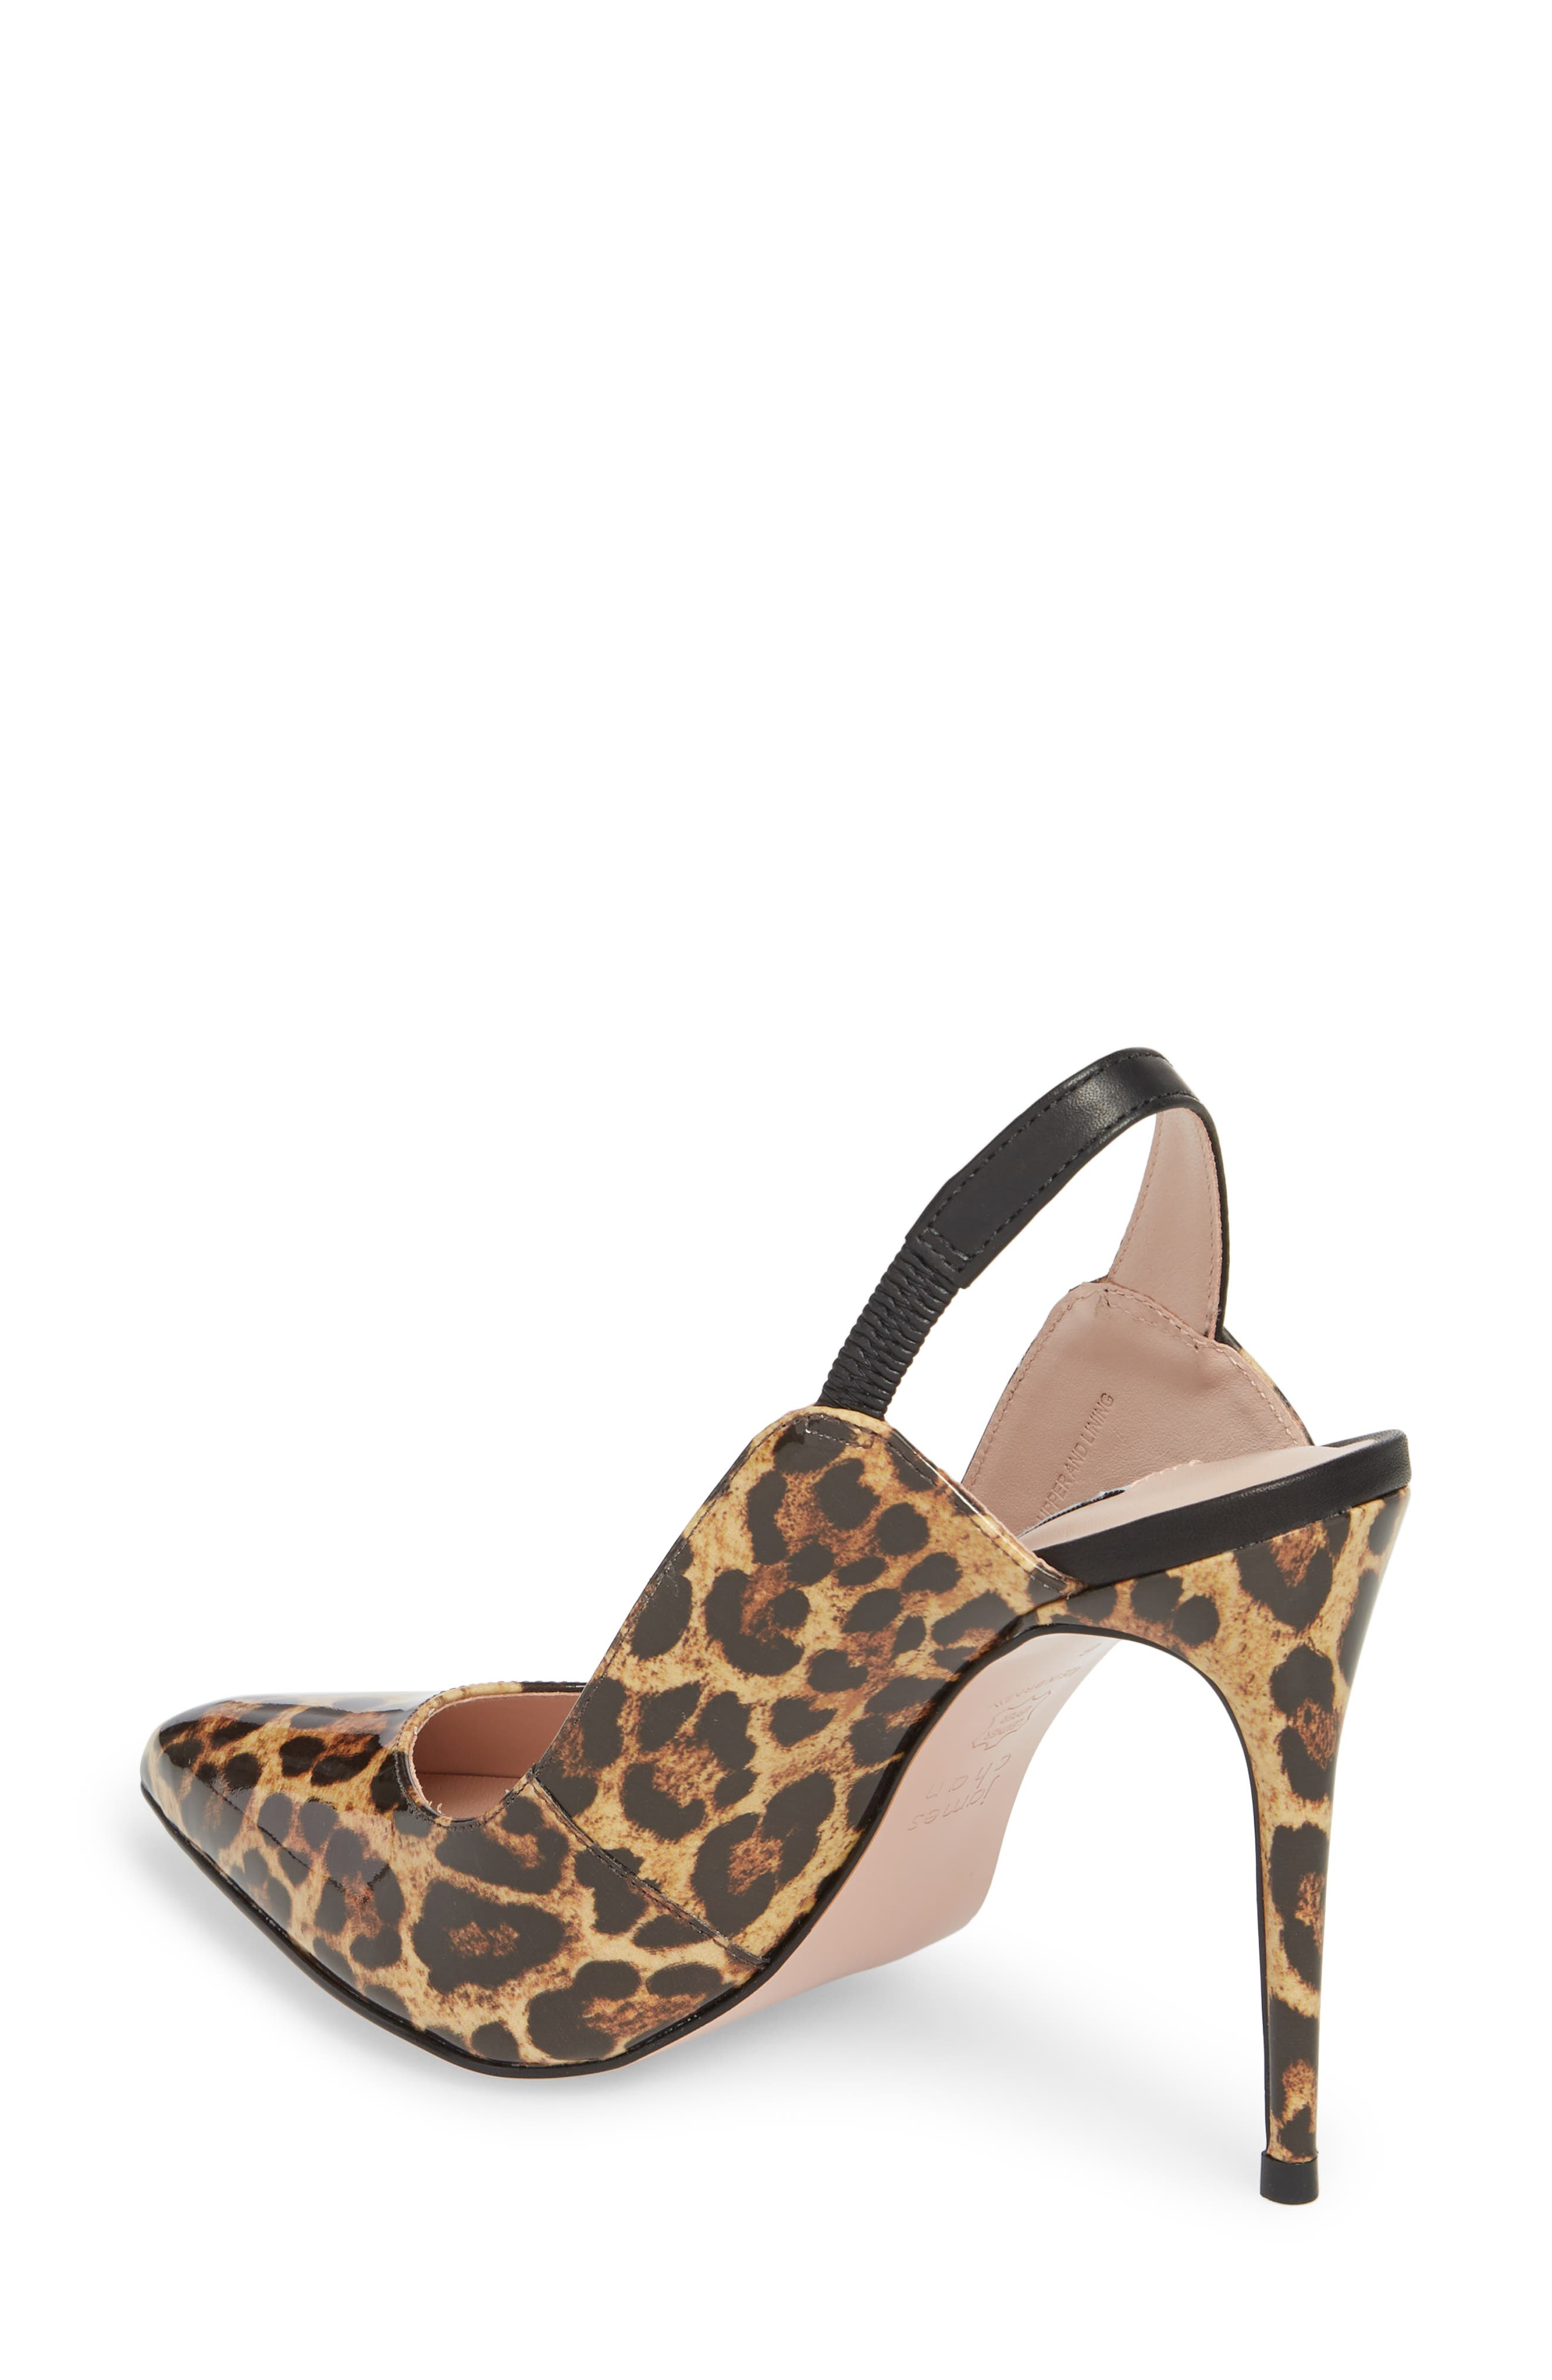 Alice Pointy Toe Pump,                             Alternate thumbnail 2, color,                             Leopard Leather